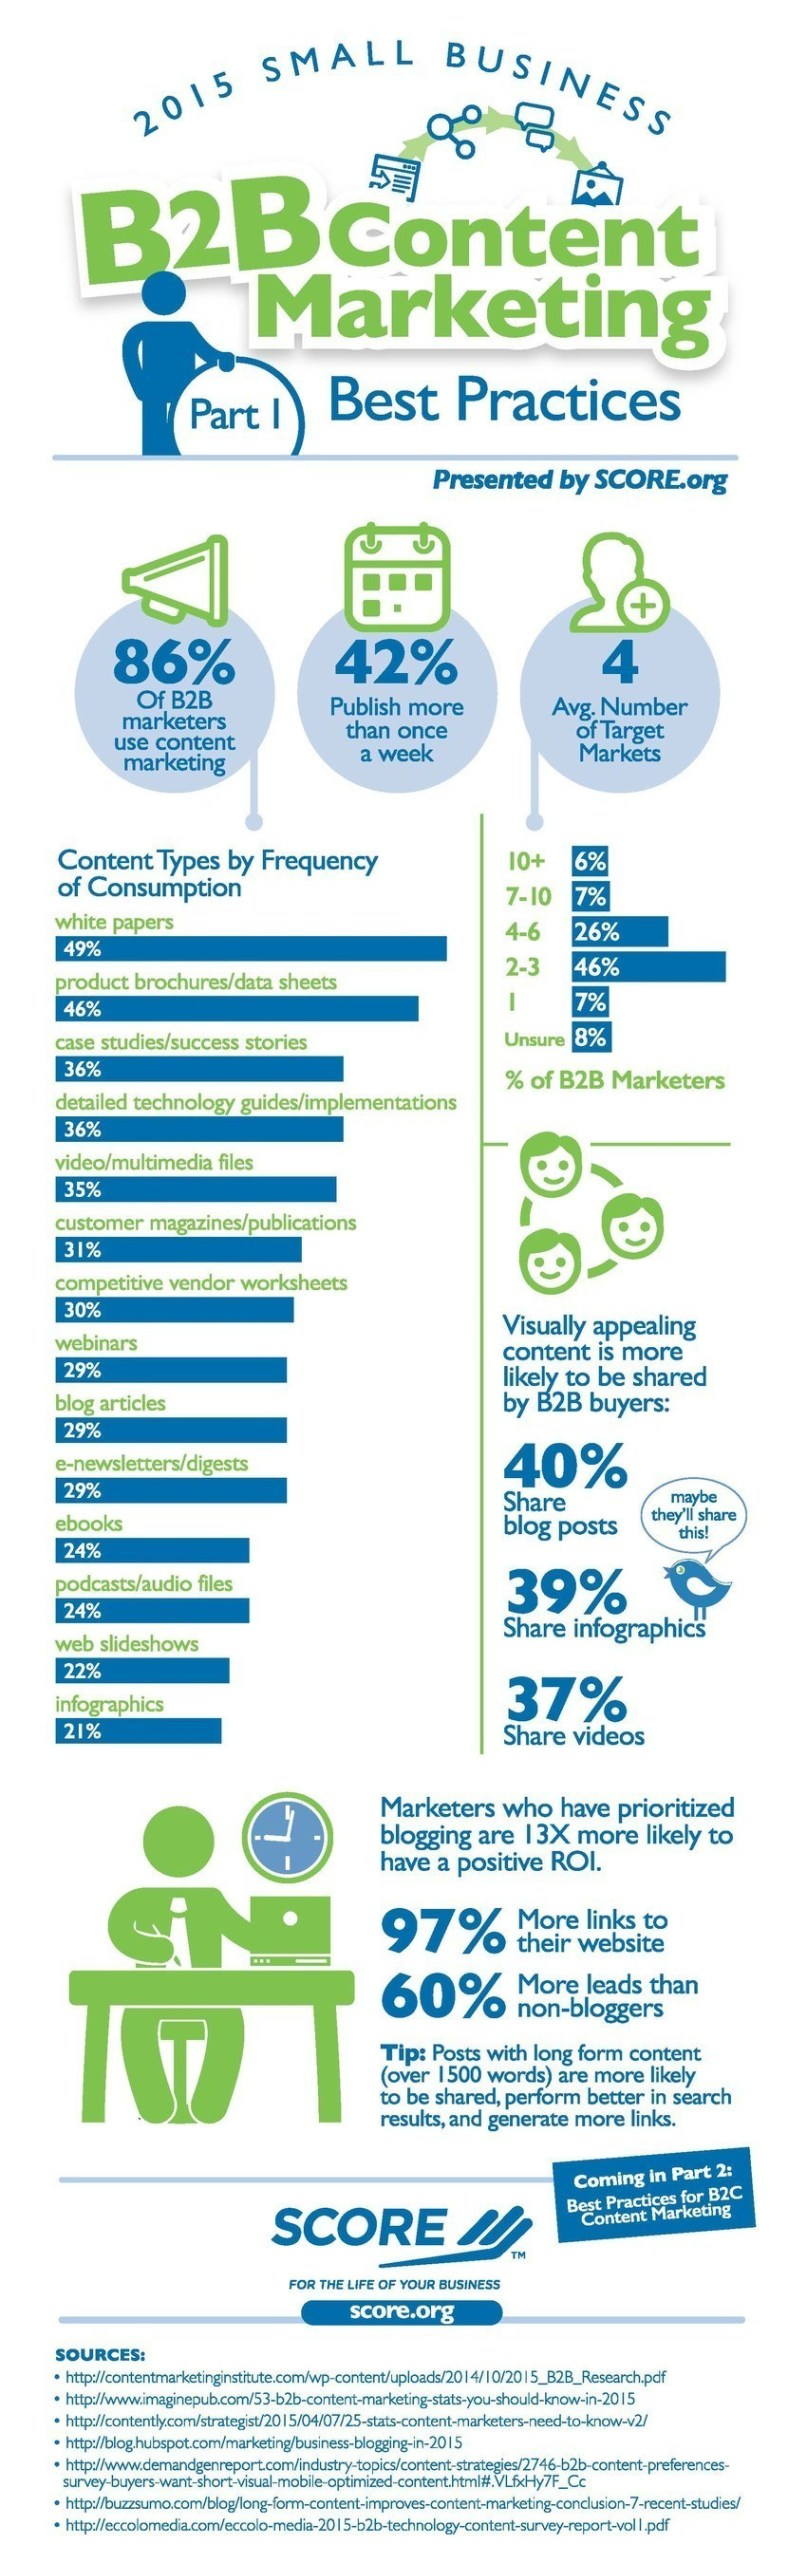 SCORE - www.score.org - the nation's largest network of free, expert business mentors, has gathered statistics on the most effective strategies for business-to-business (B2B) content marketing. 86% of B2B marketers use content marketing, and 42% publish content more than once a week. On average, B2B marketers send content to 4 different target audiences. (PRNewsFoto/SCORE Association)